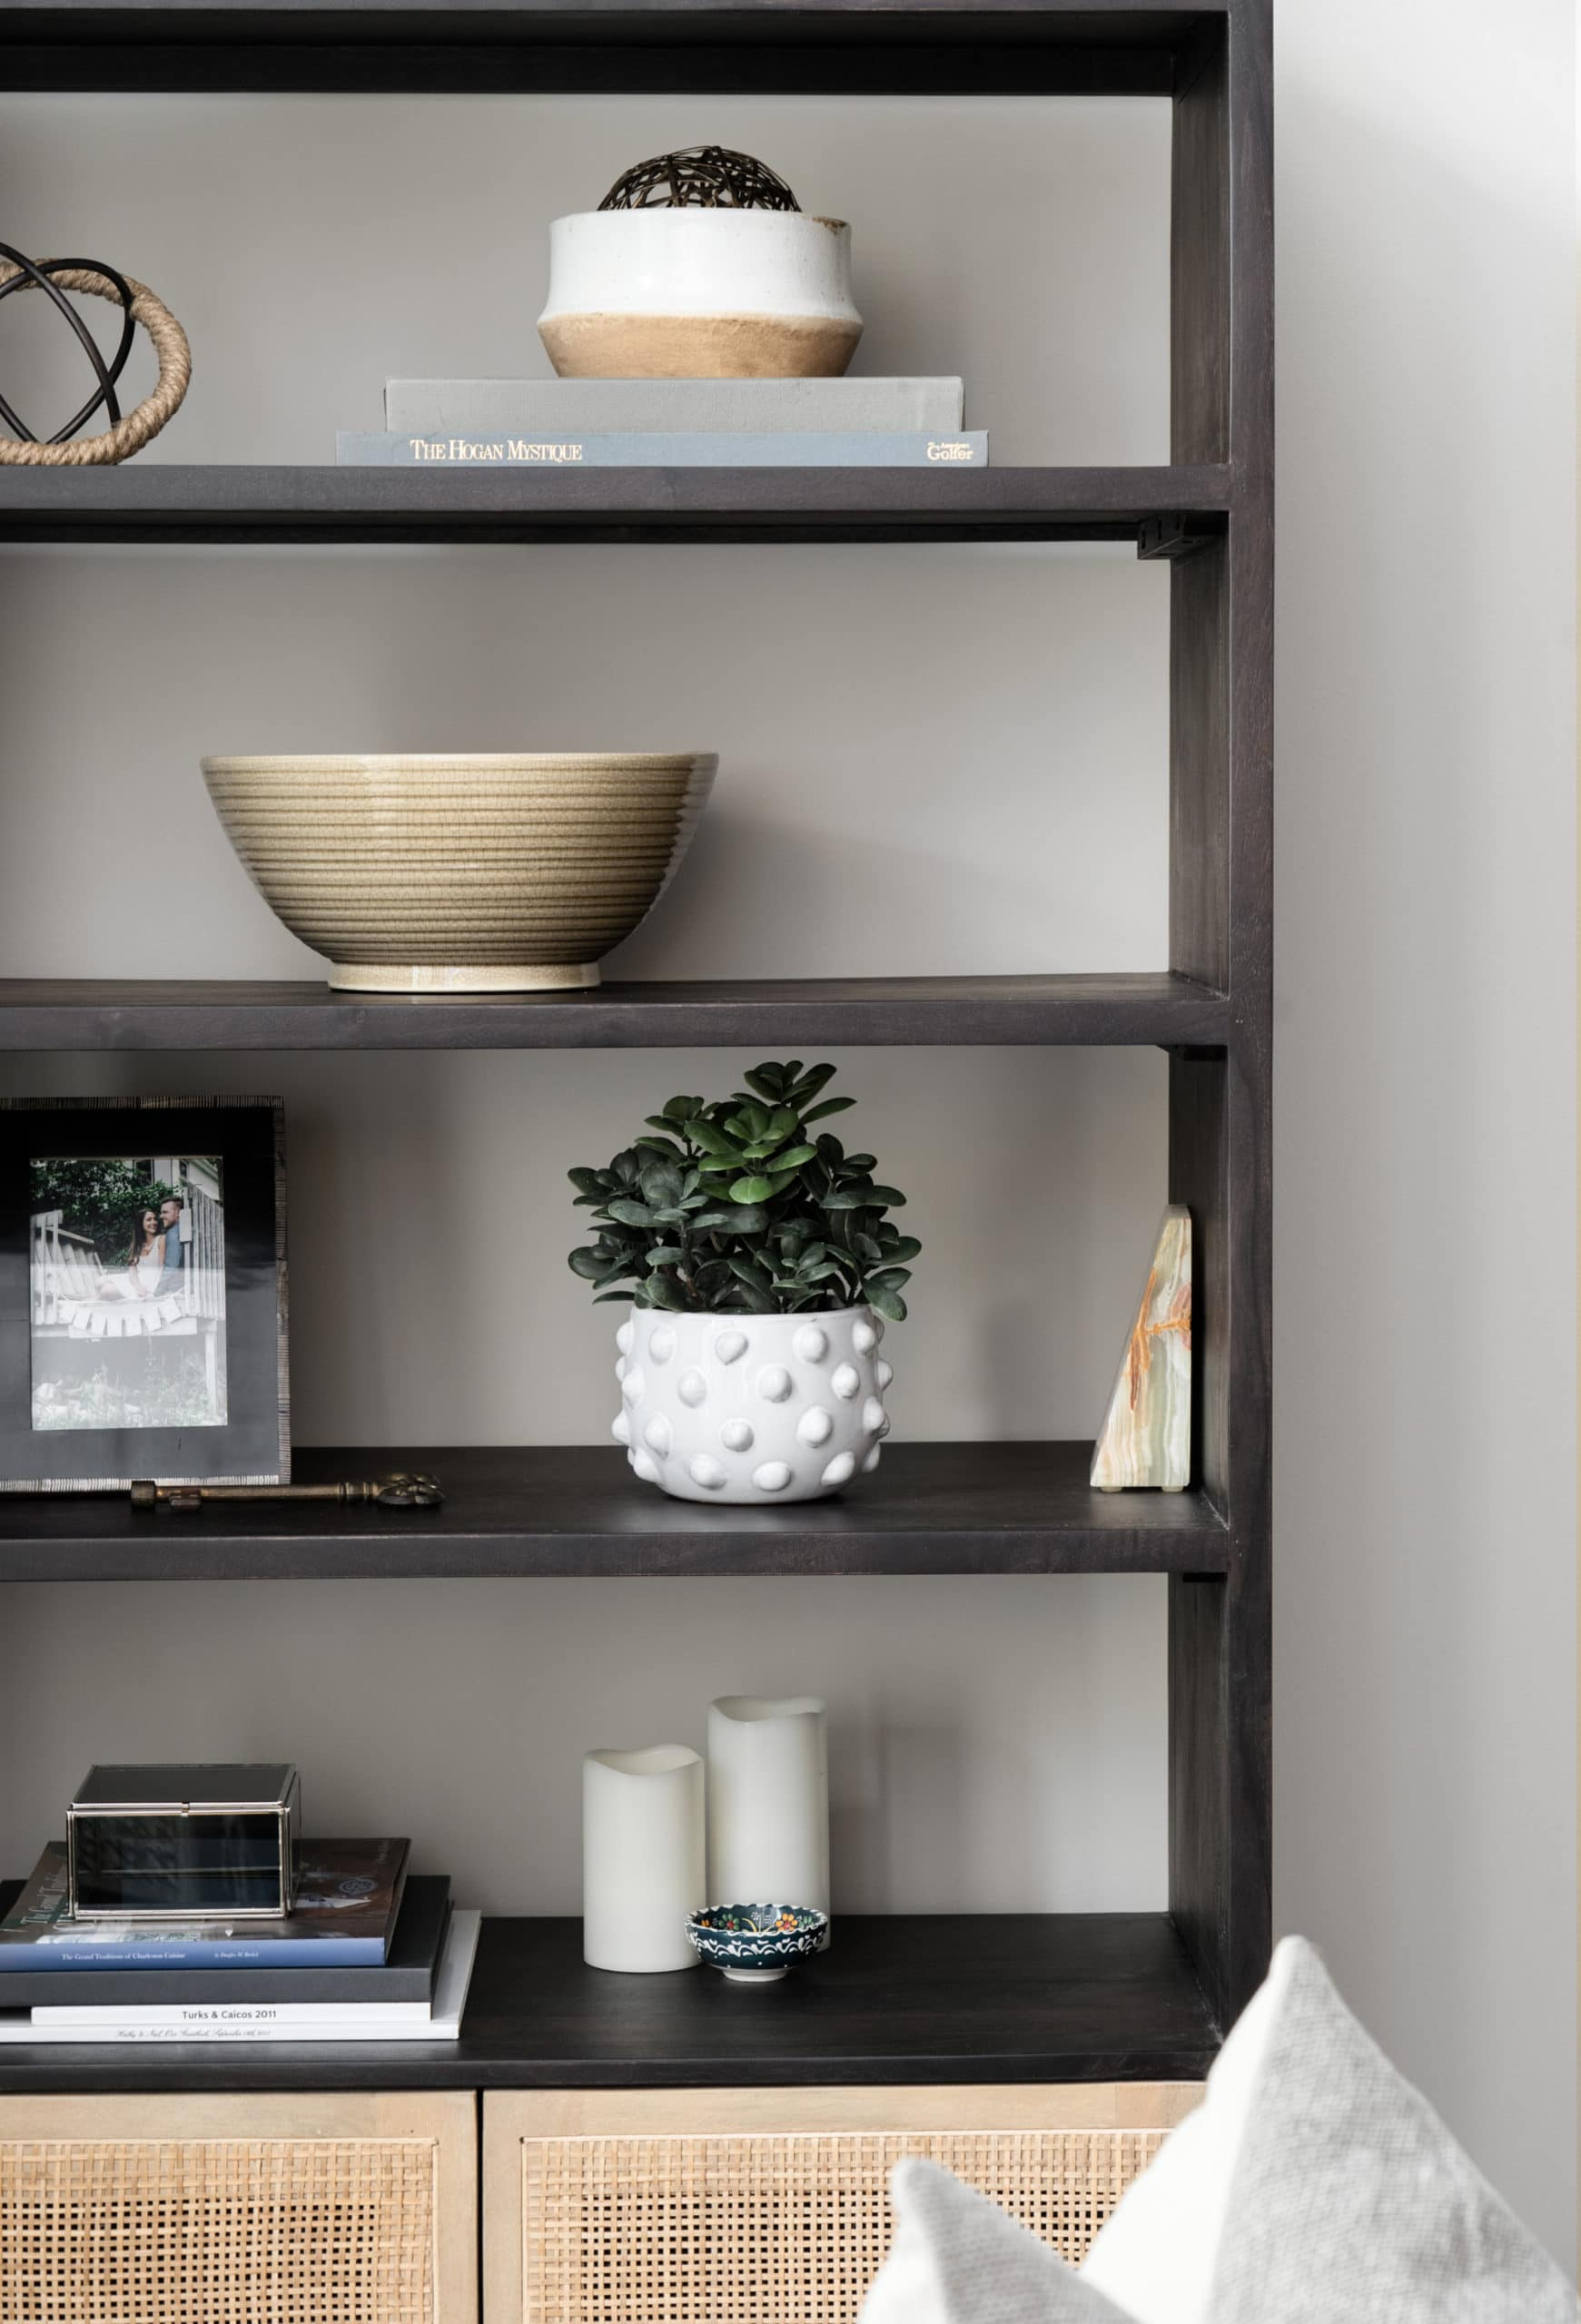 Dark shelving unit with an assortment of decorations